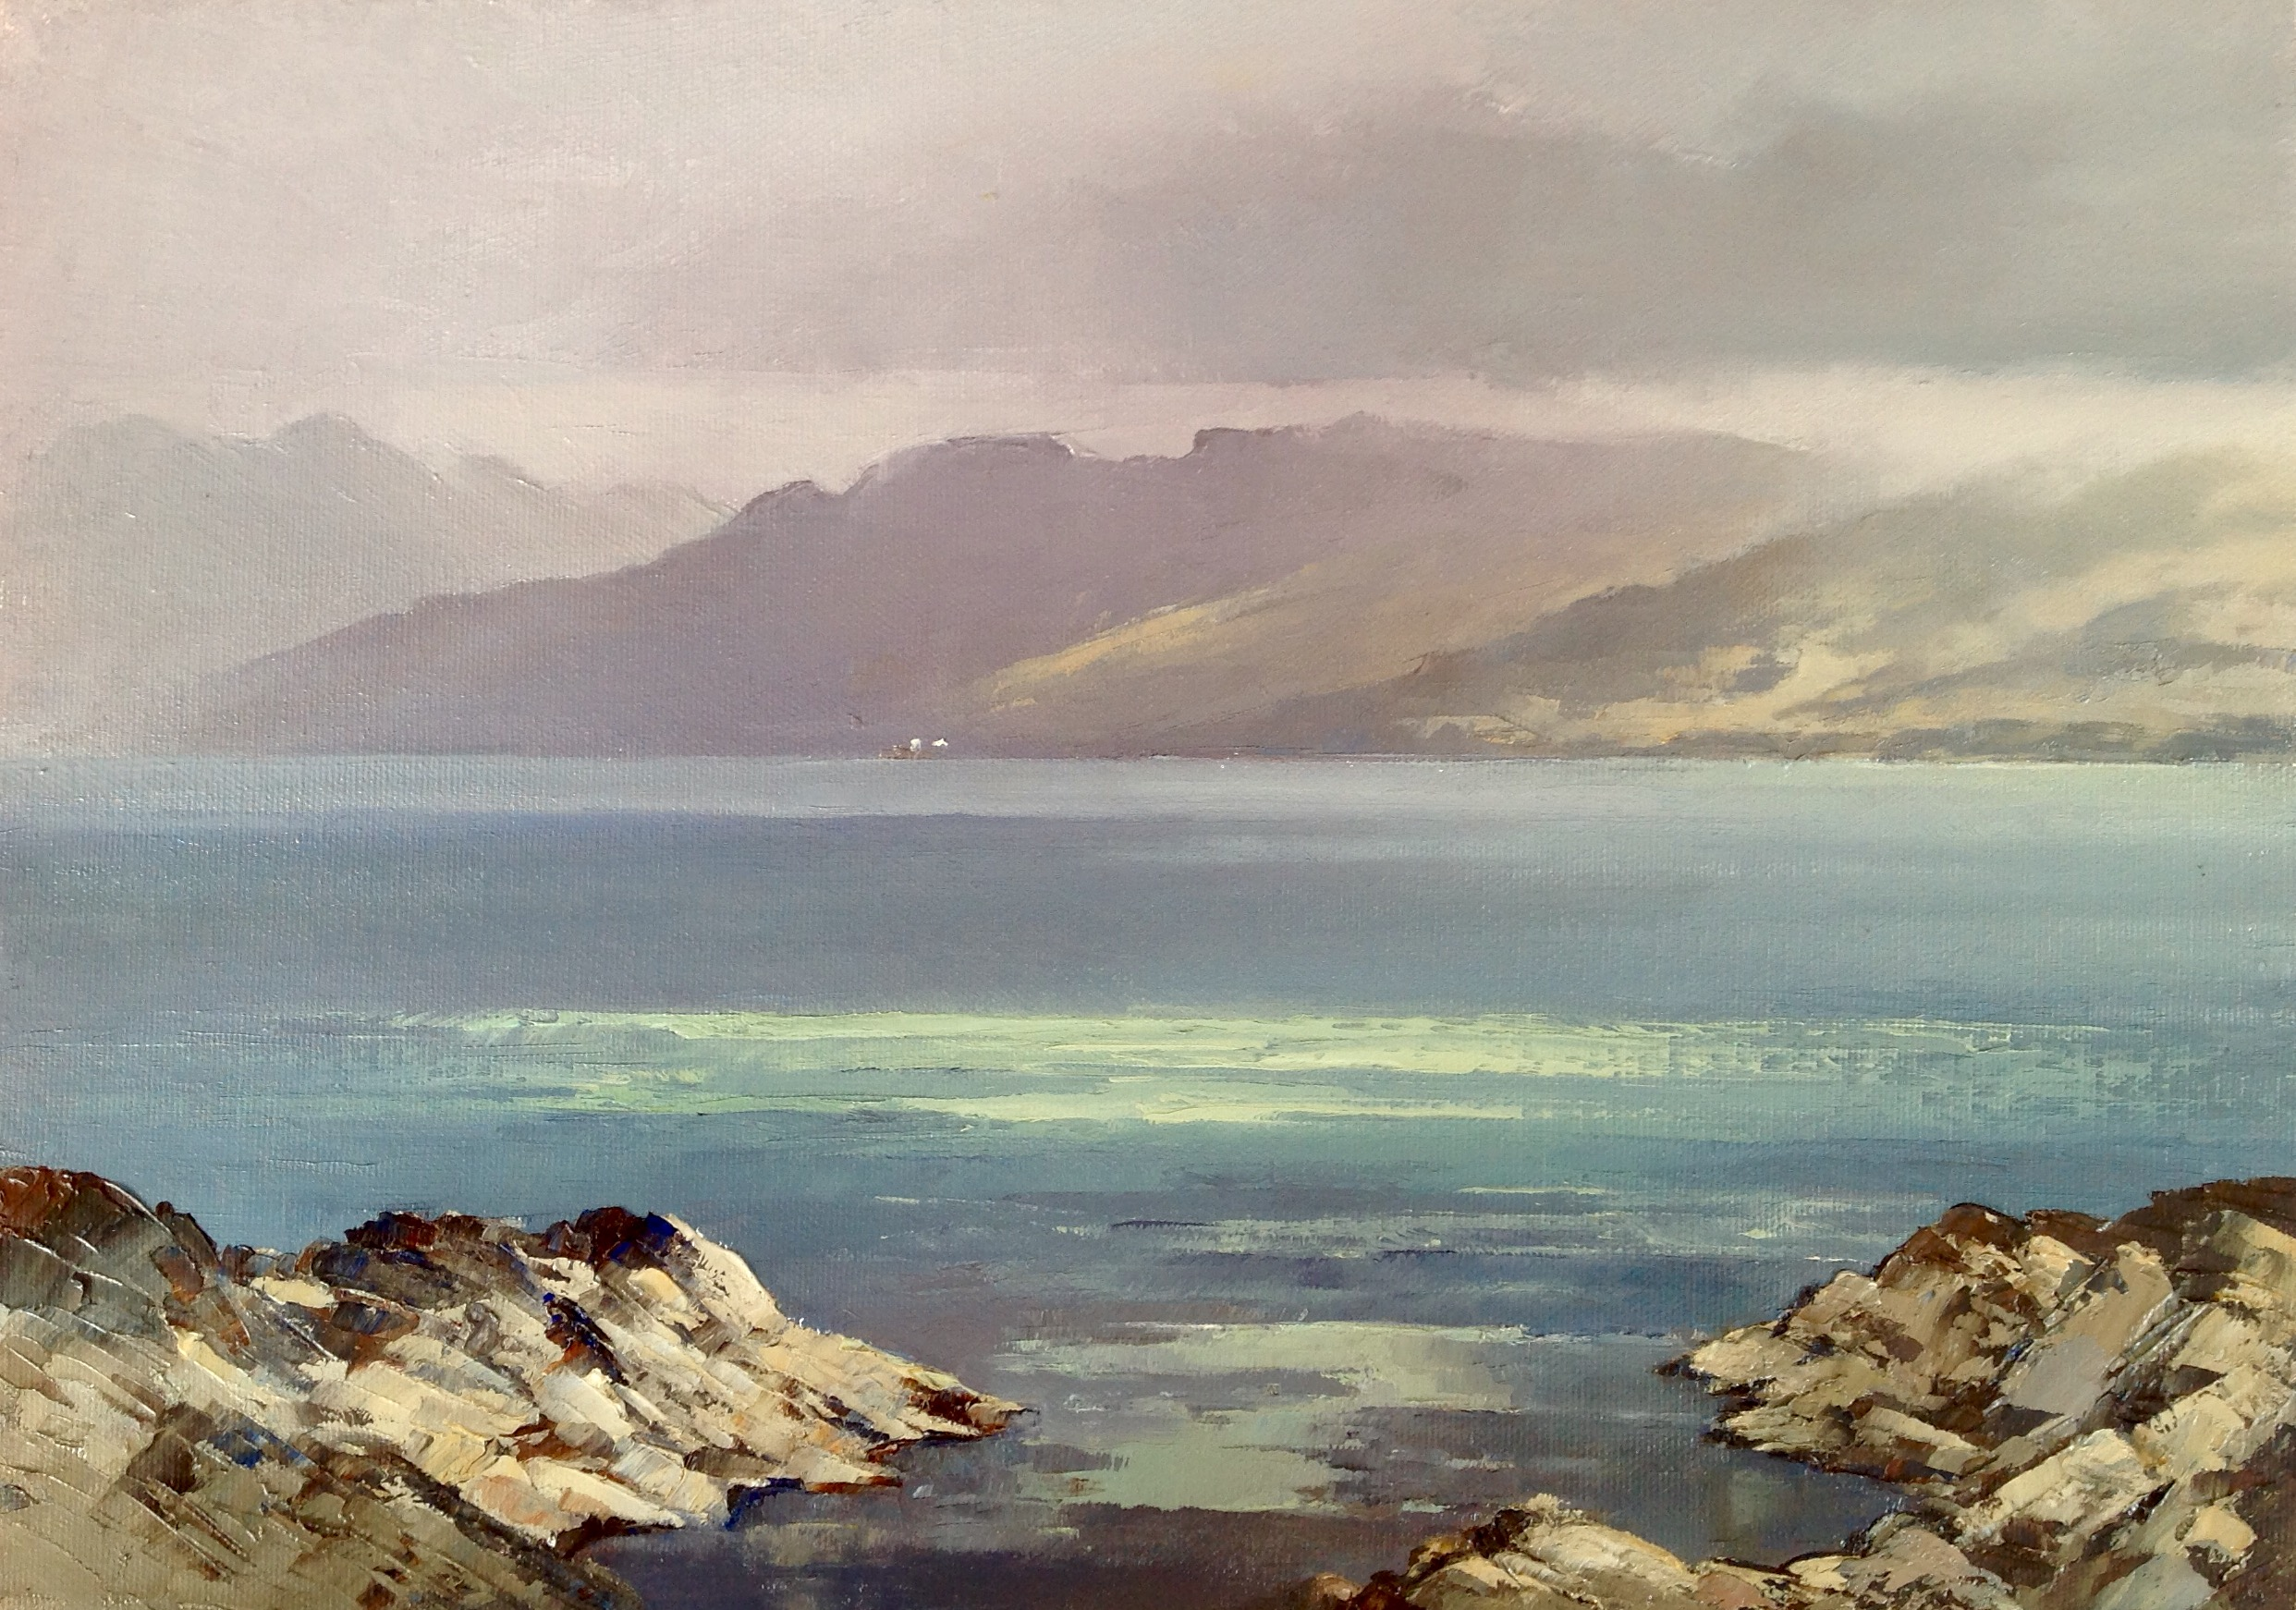 Mist Clearing from Knoydart by William James Swann at the Saffron Walden Gallery